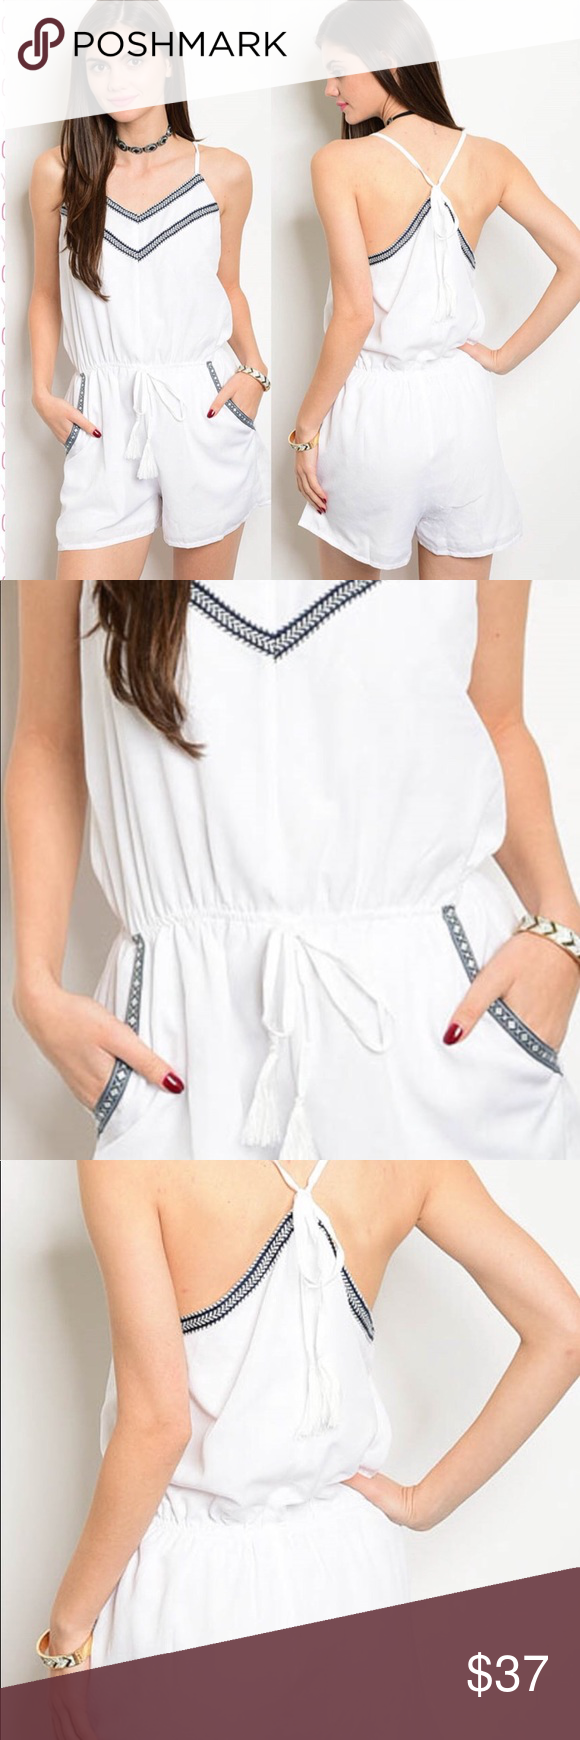 "❤️DARLING LINED EMBROIDERY SMOCK WAIST ROMPER *Darling lined off white embroidery detail smock waist romper shows a lot with the spaghetti straps that tie in the back with tassels, the tie in front at elastic waist, the v-neck & pockets outlined in embroidery  *100% Rayon  *Length approx 38"" Inseam approx 2"" Shorts #whiteembroidery"